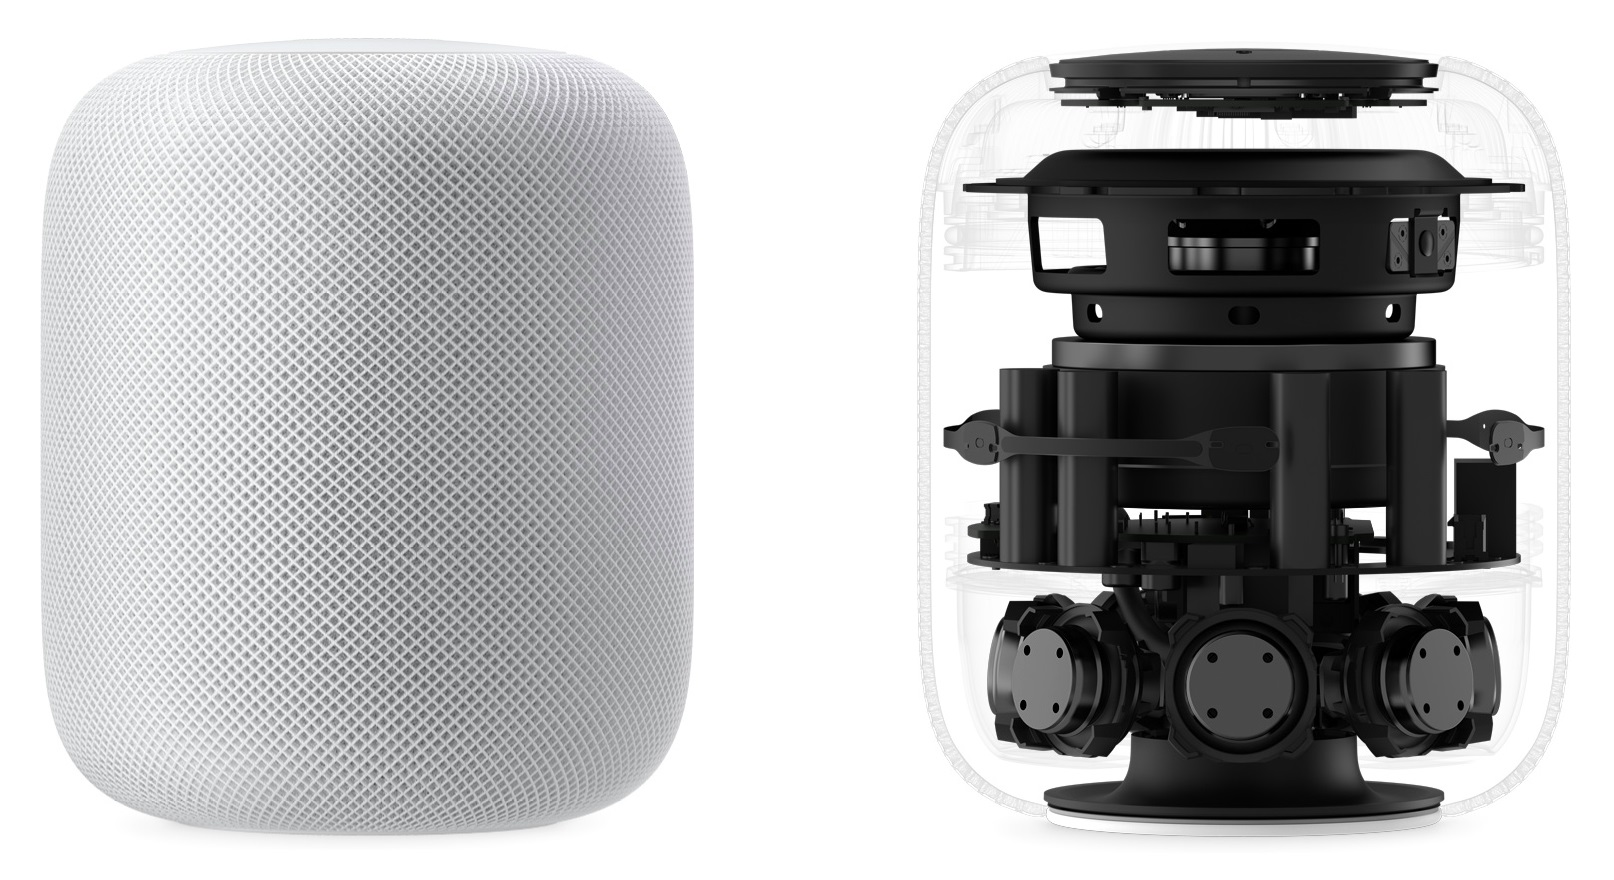 Smart Speaker: Apple Homepod